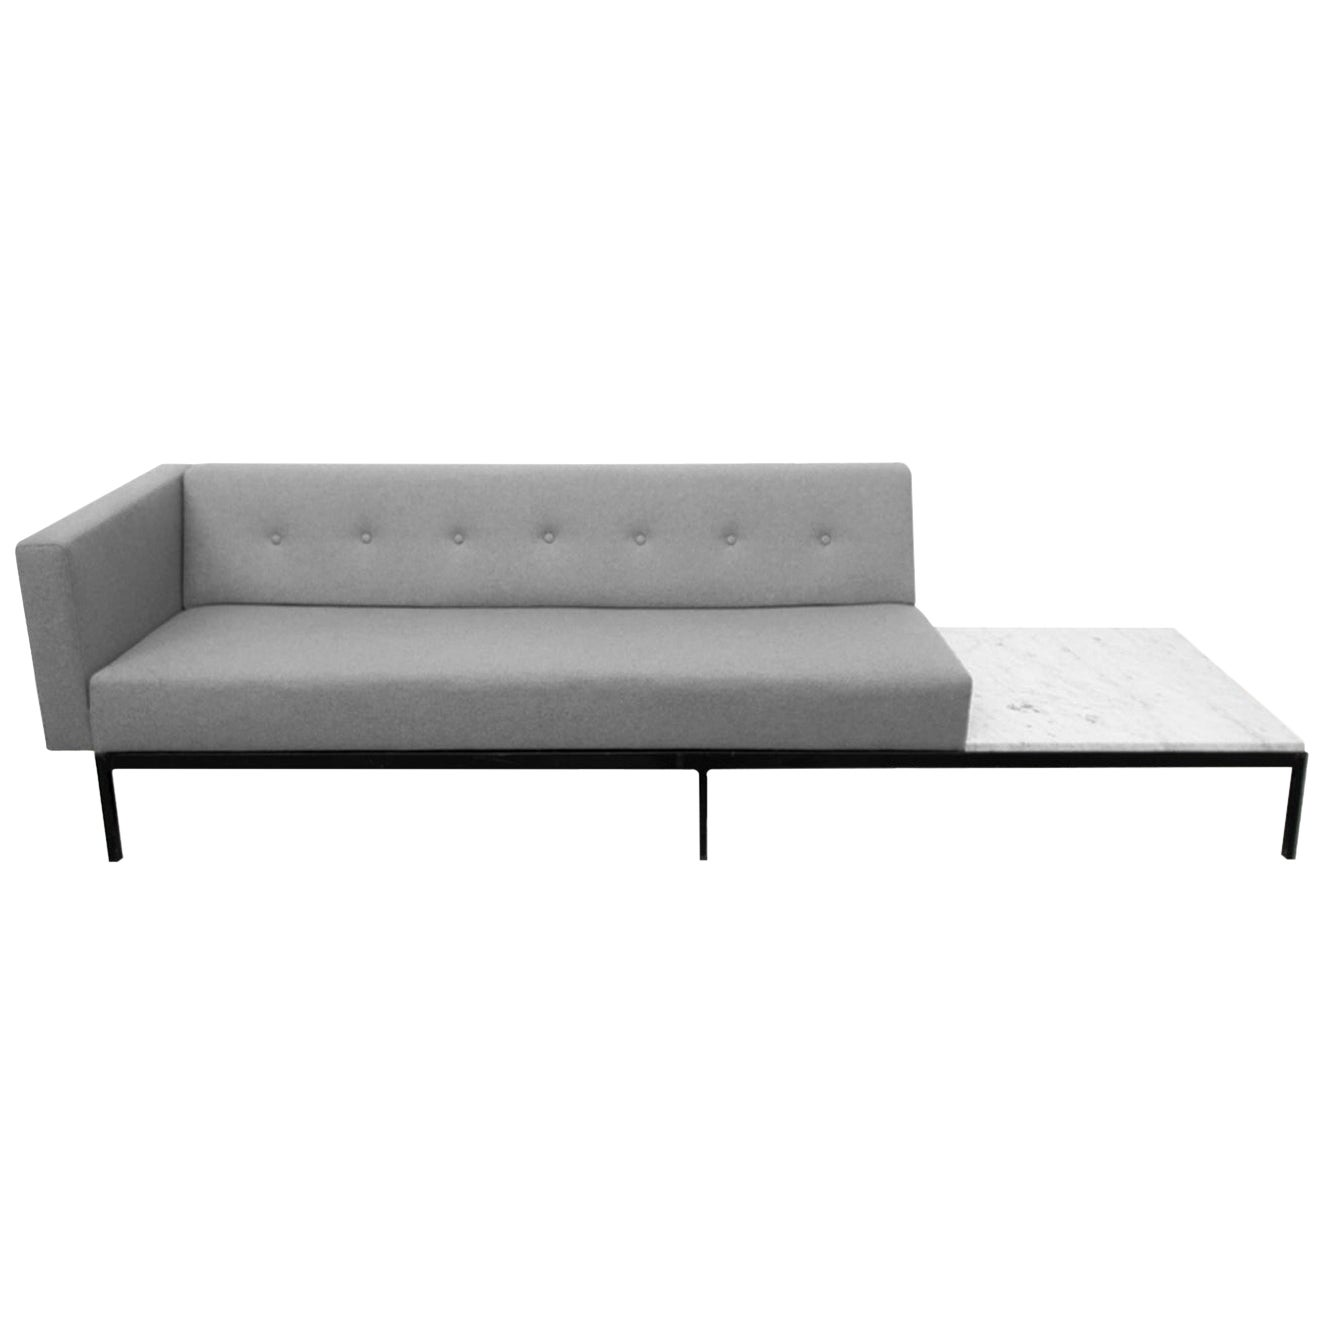 Sofa 070-Series by Kho Liang Ie for Artifort, 1960